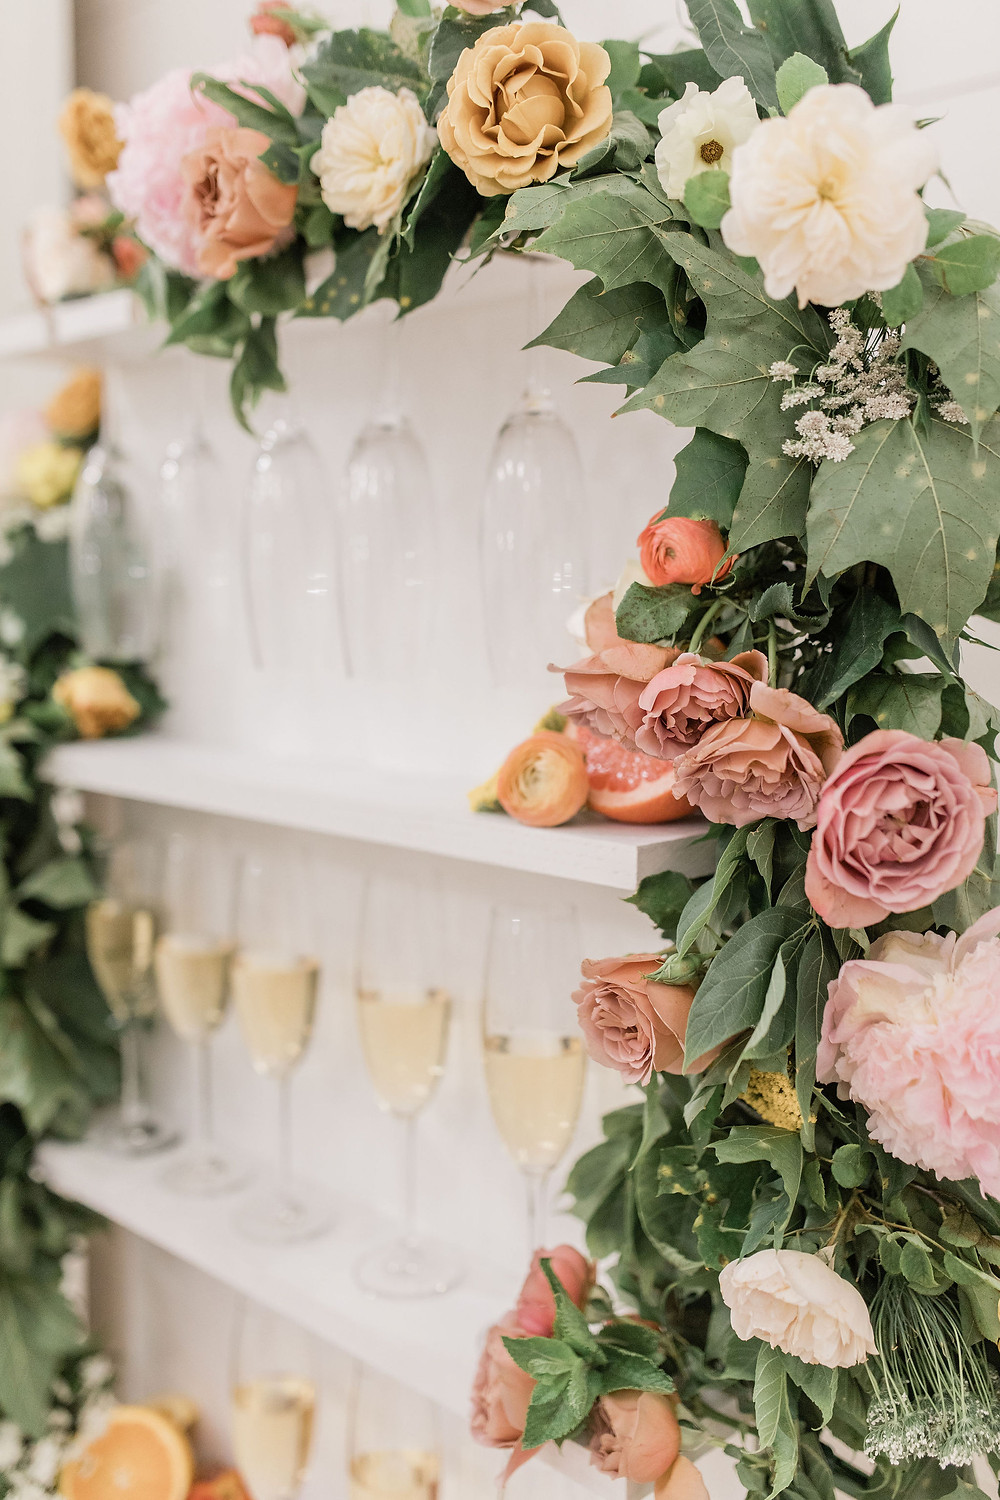 A little bubbly celebration is in store, complete with a floral garland of coordinating flowers.